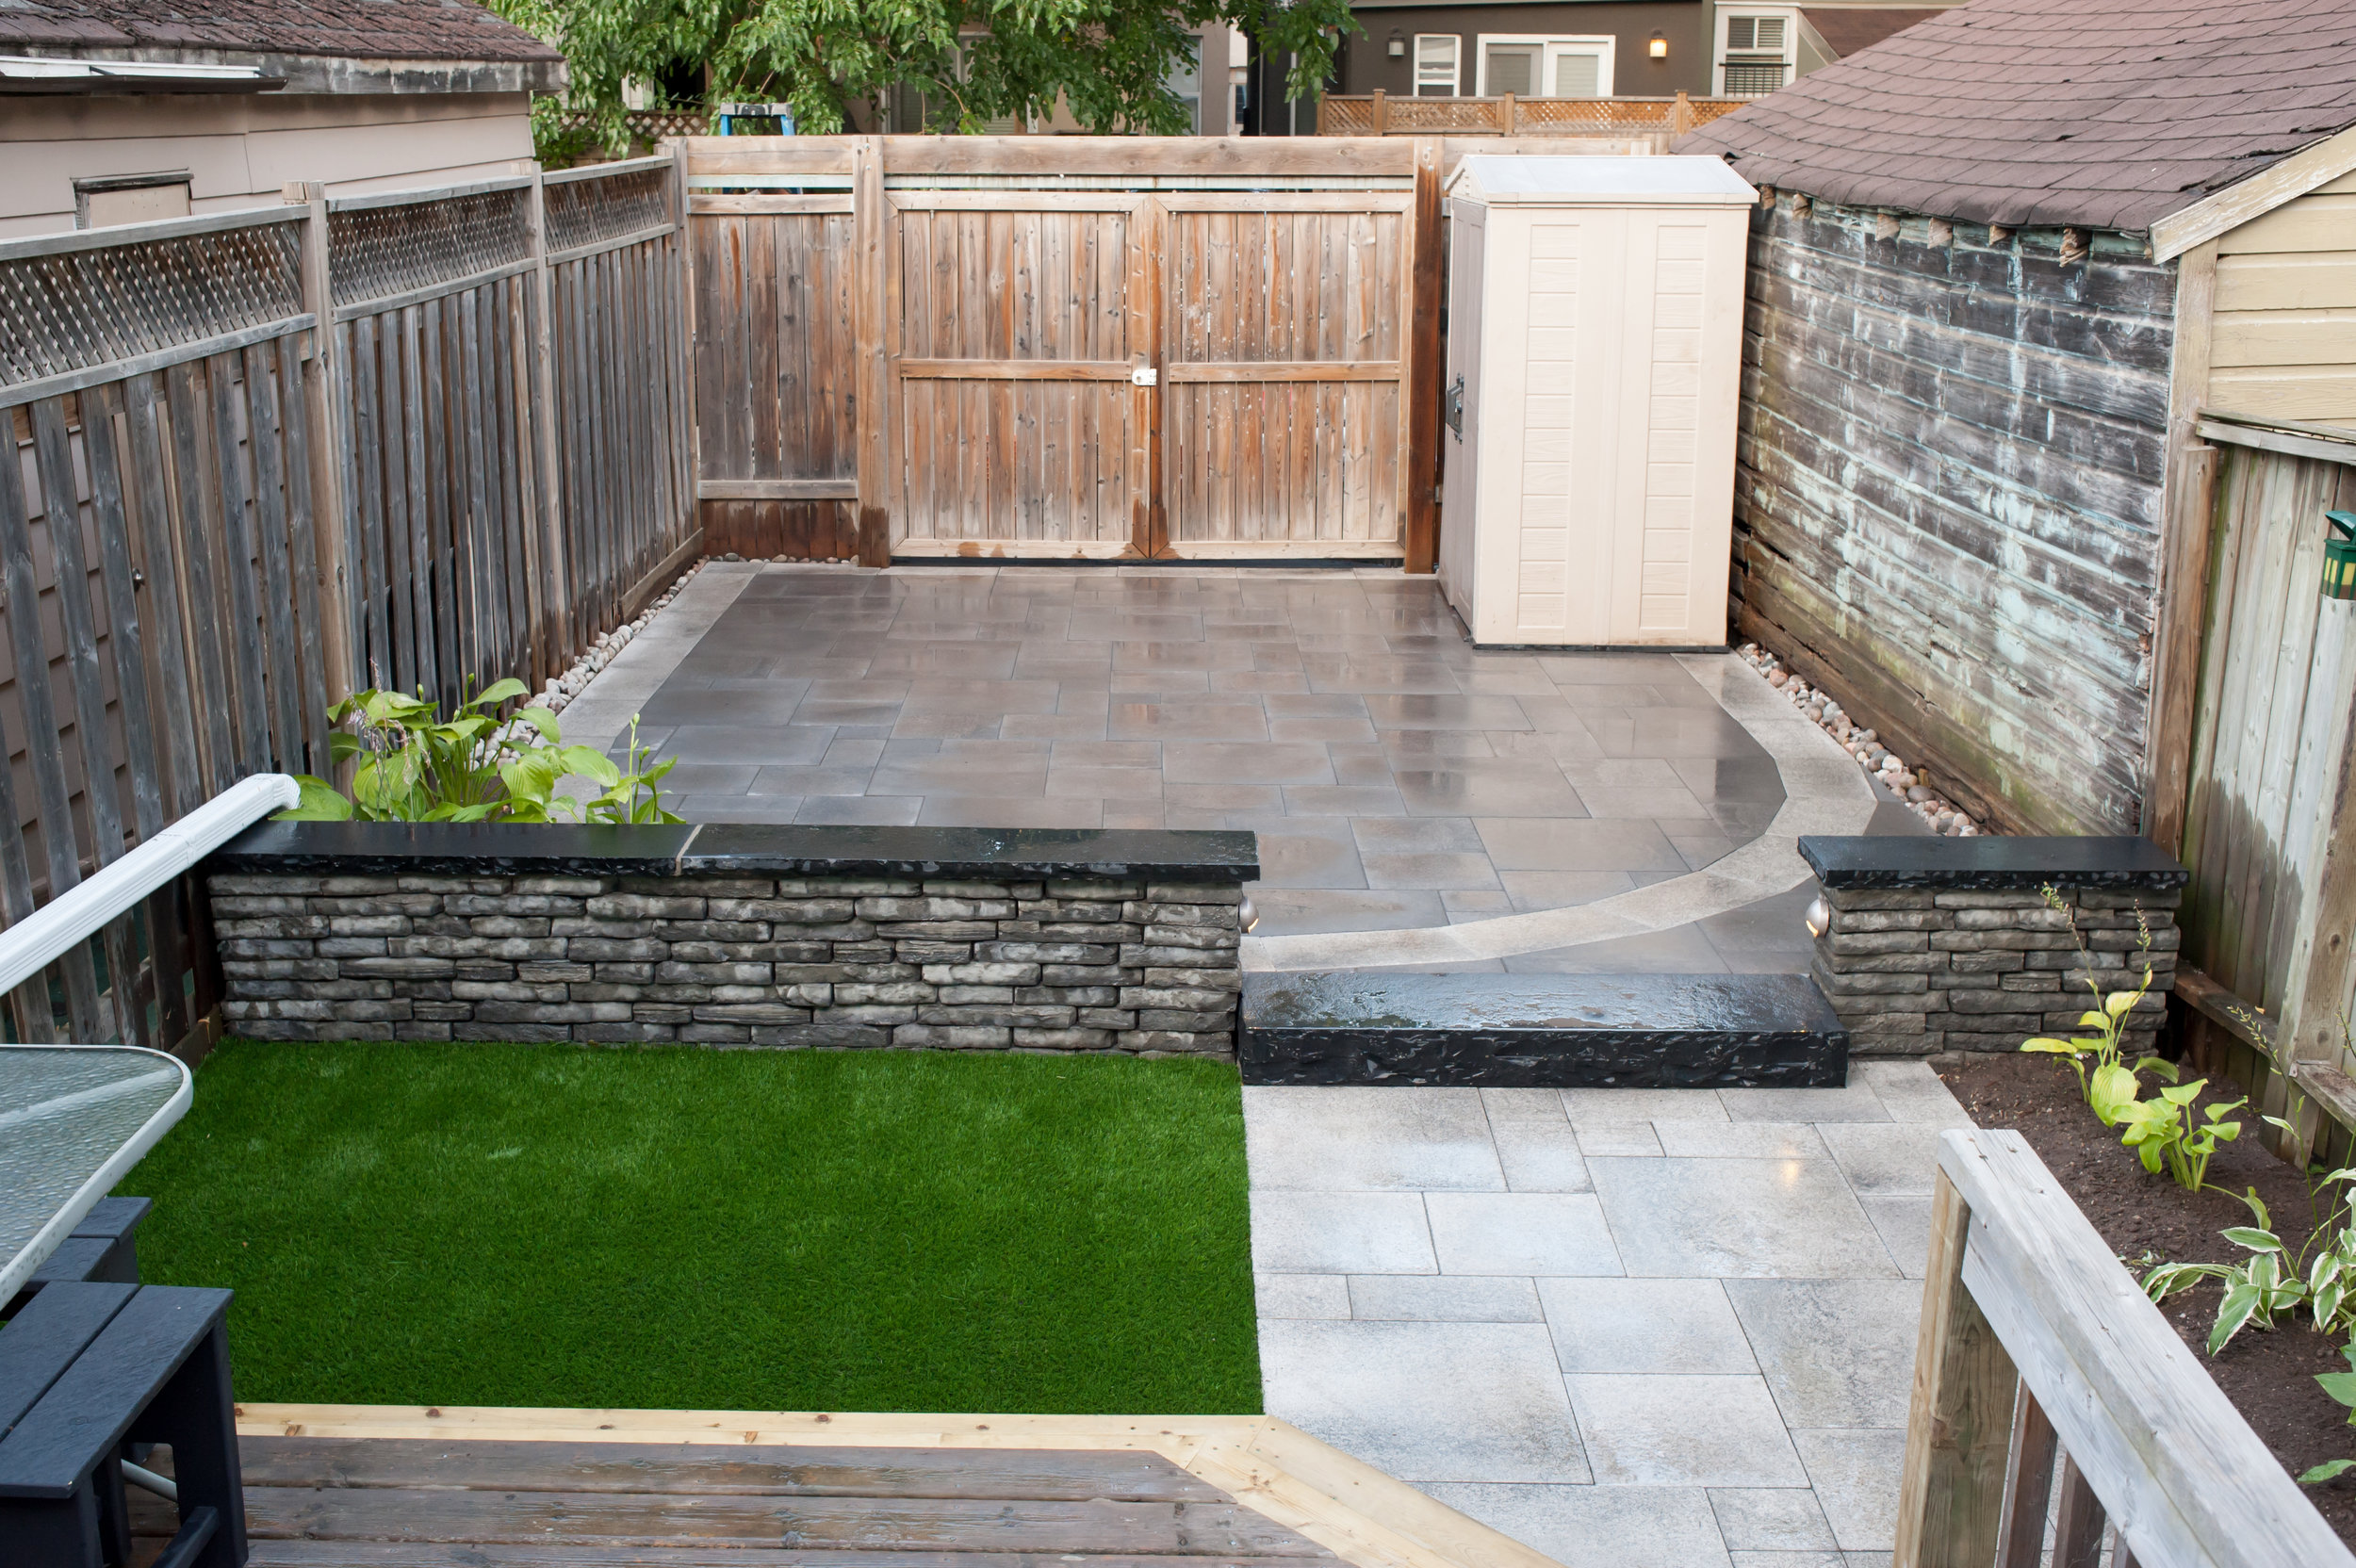 Completed Project - View Toward Back Gate